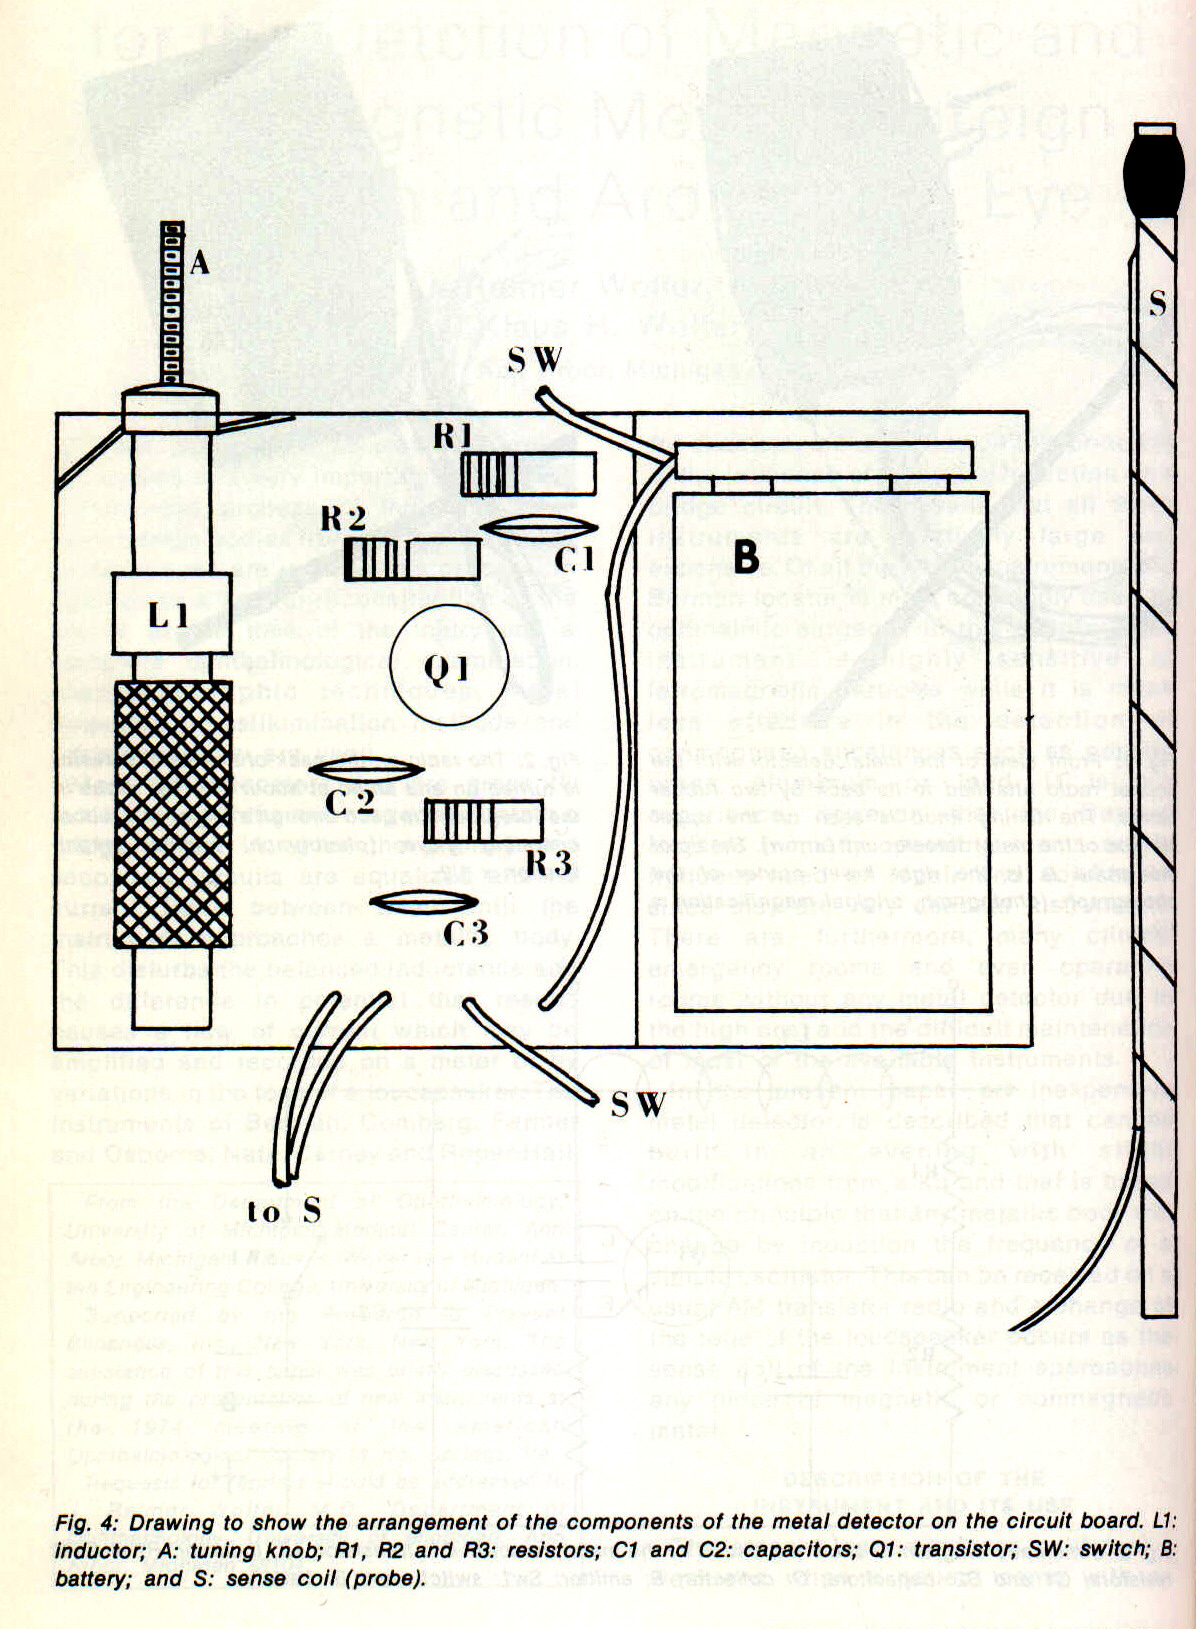 metal detector drawing at getdrawings com free for personal use rh getdrawings com White's Metal Detector Schematics 1980 Aa4161 Metal Detector Kit Parts List